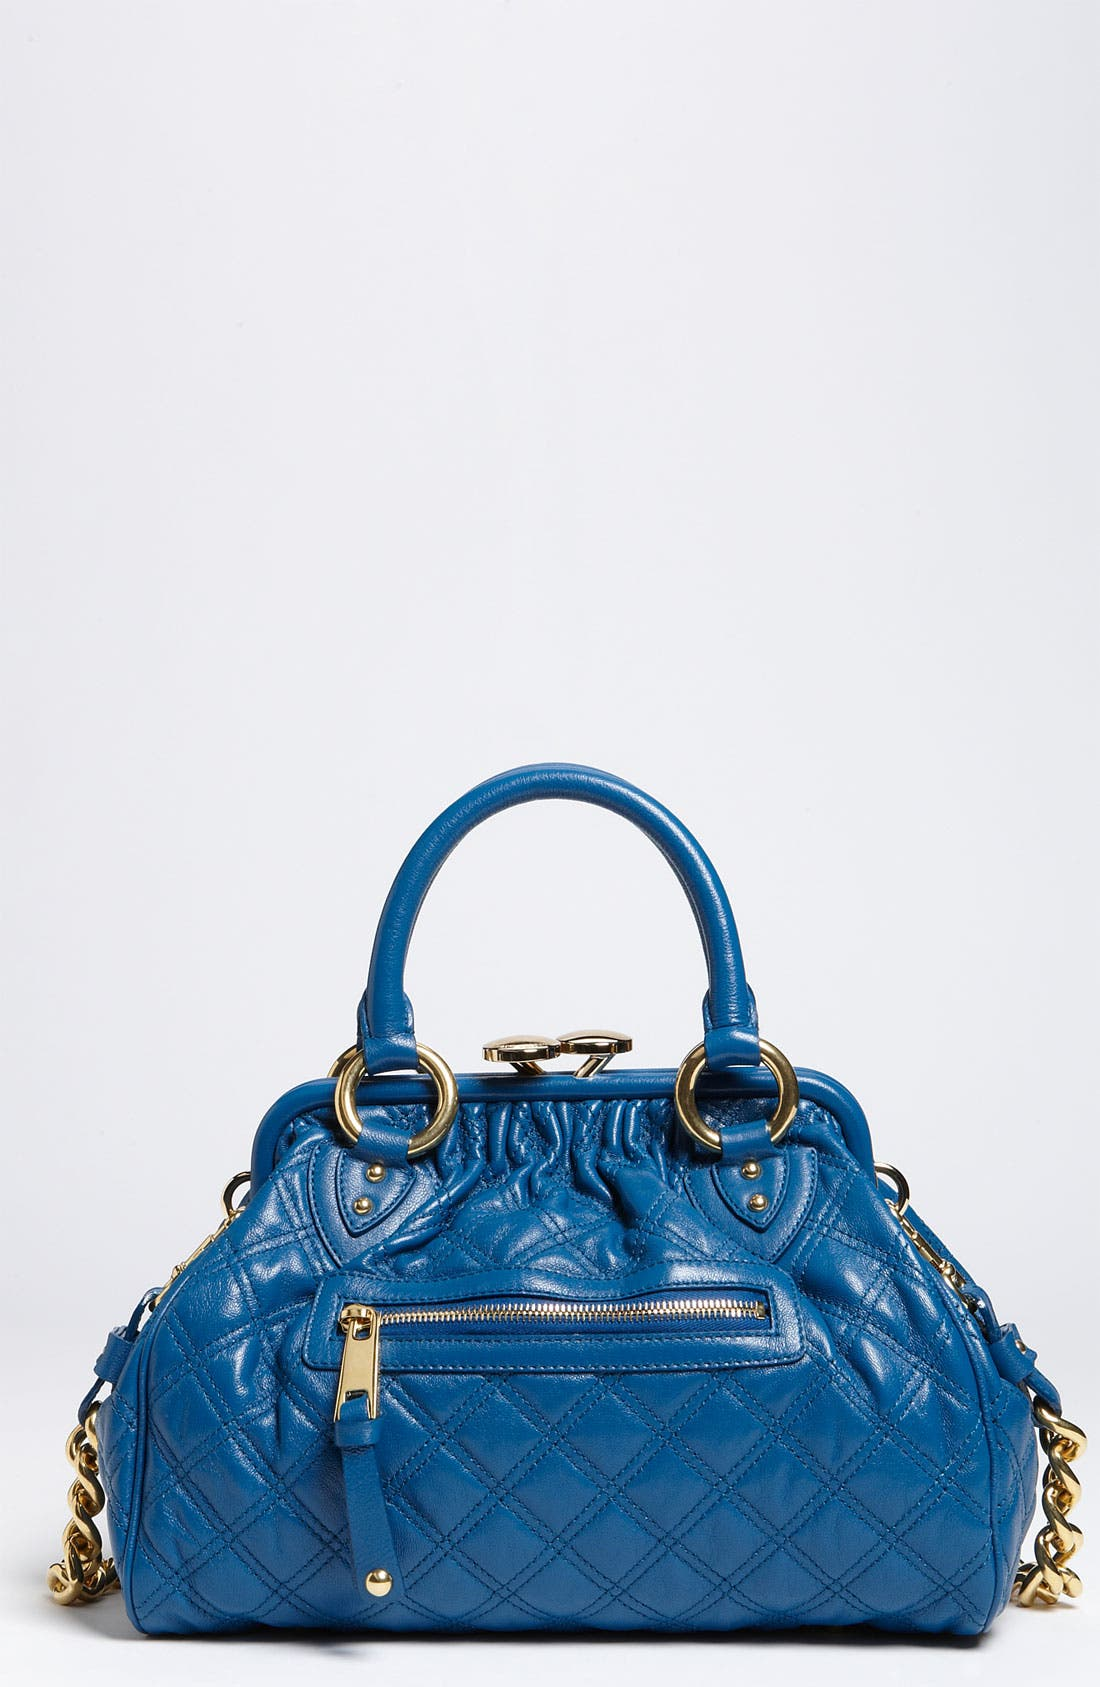 Main Image - MARC JACOBS 'Quilting Mini Stam' Leather Satchel